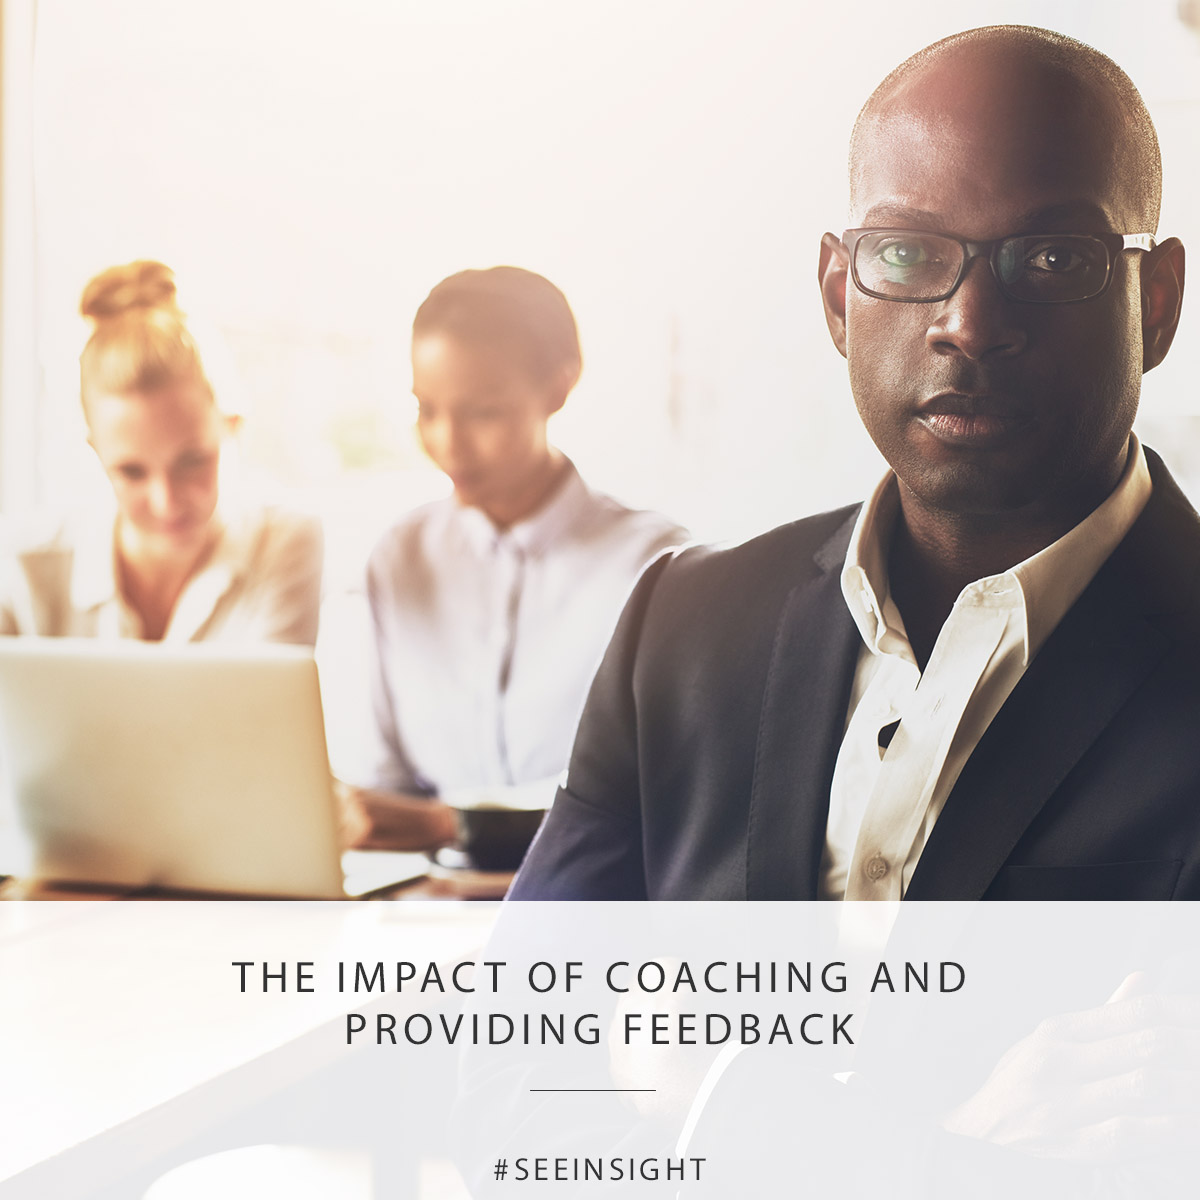 Impact of Coaching and Providing Feedback